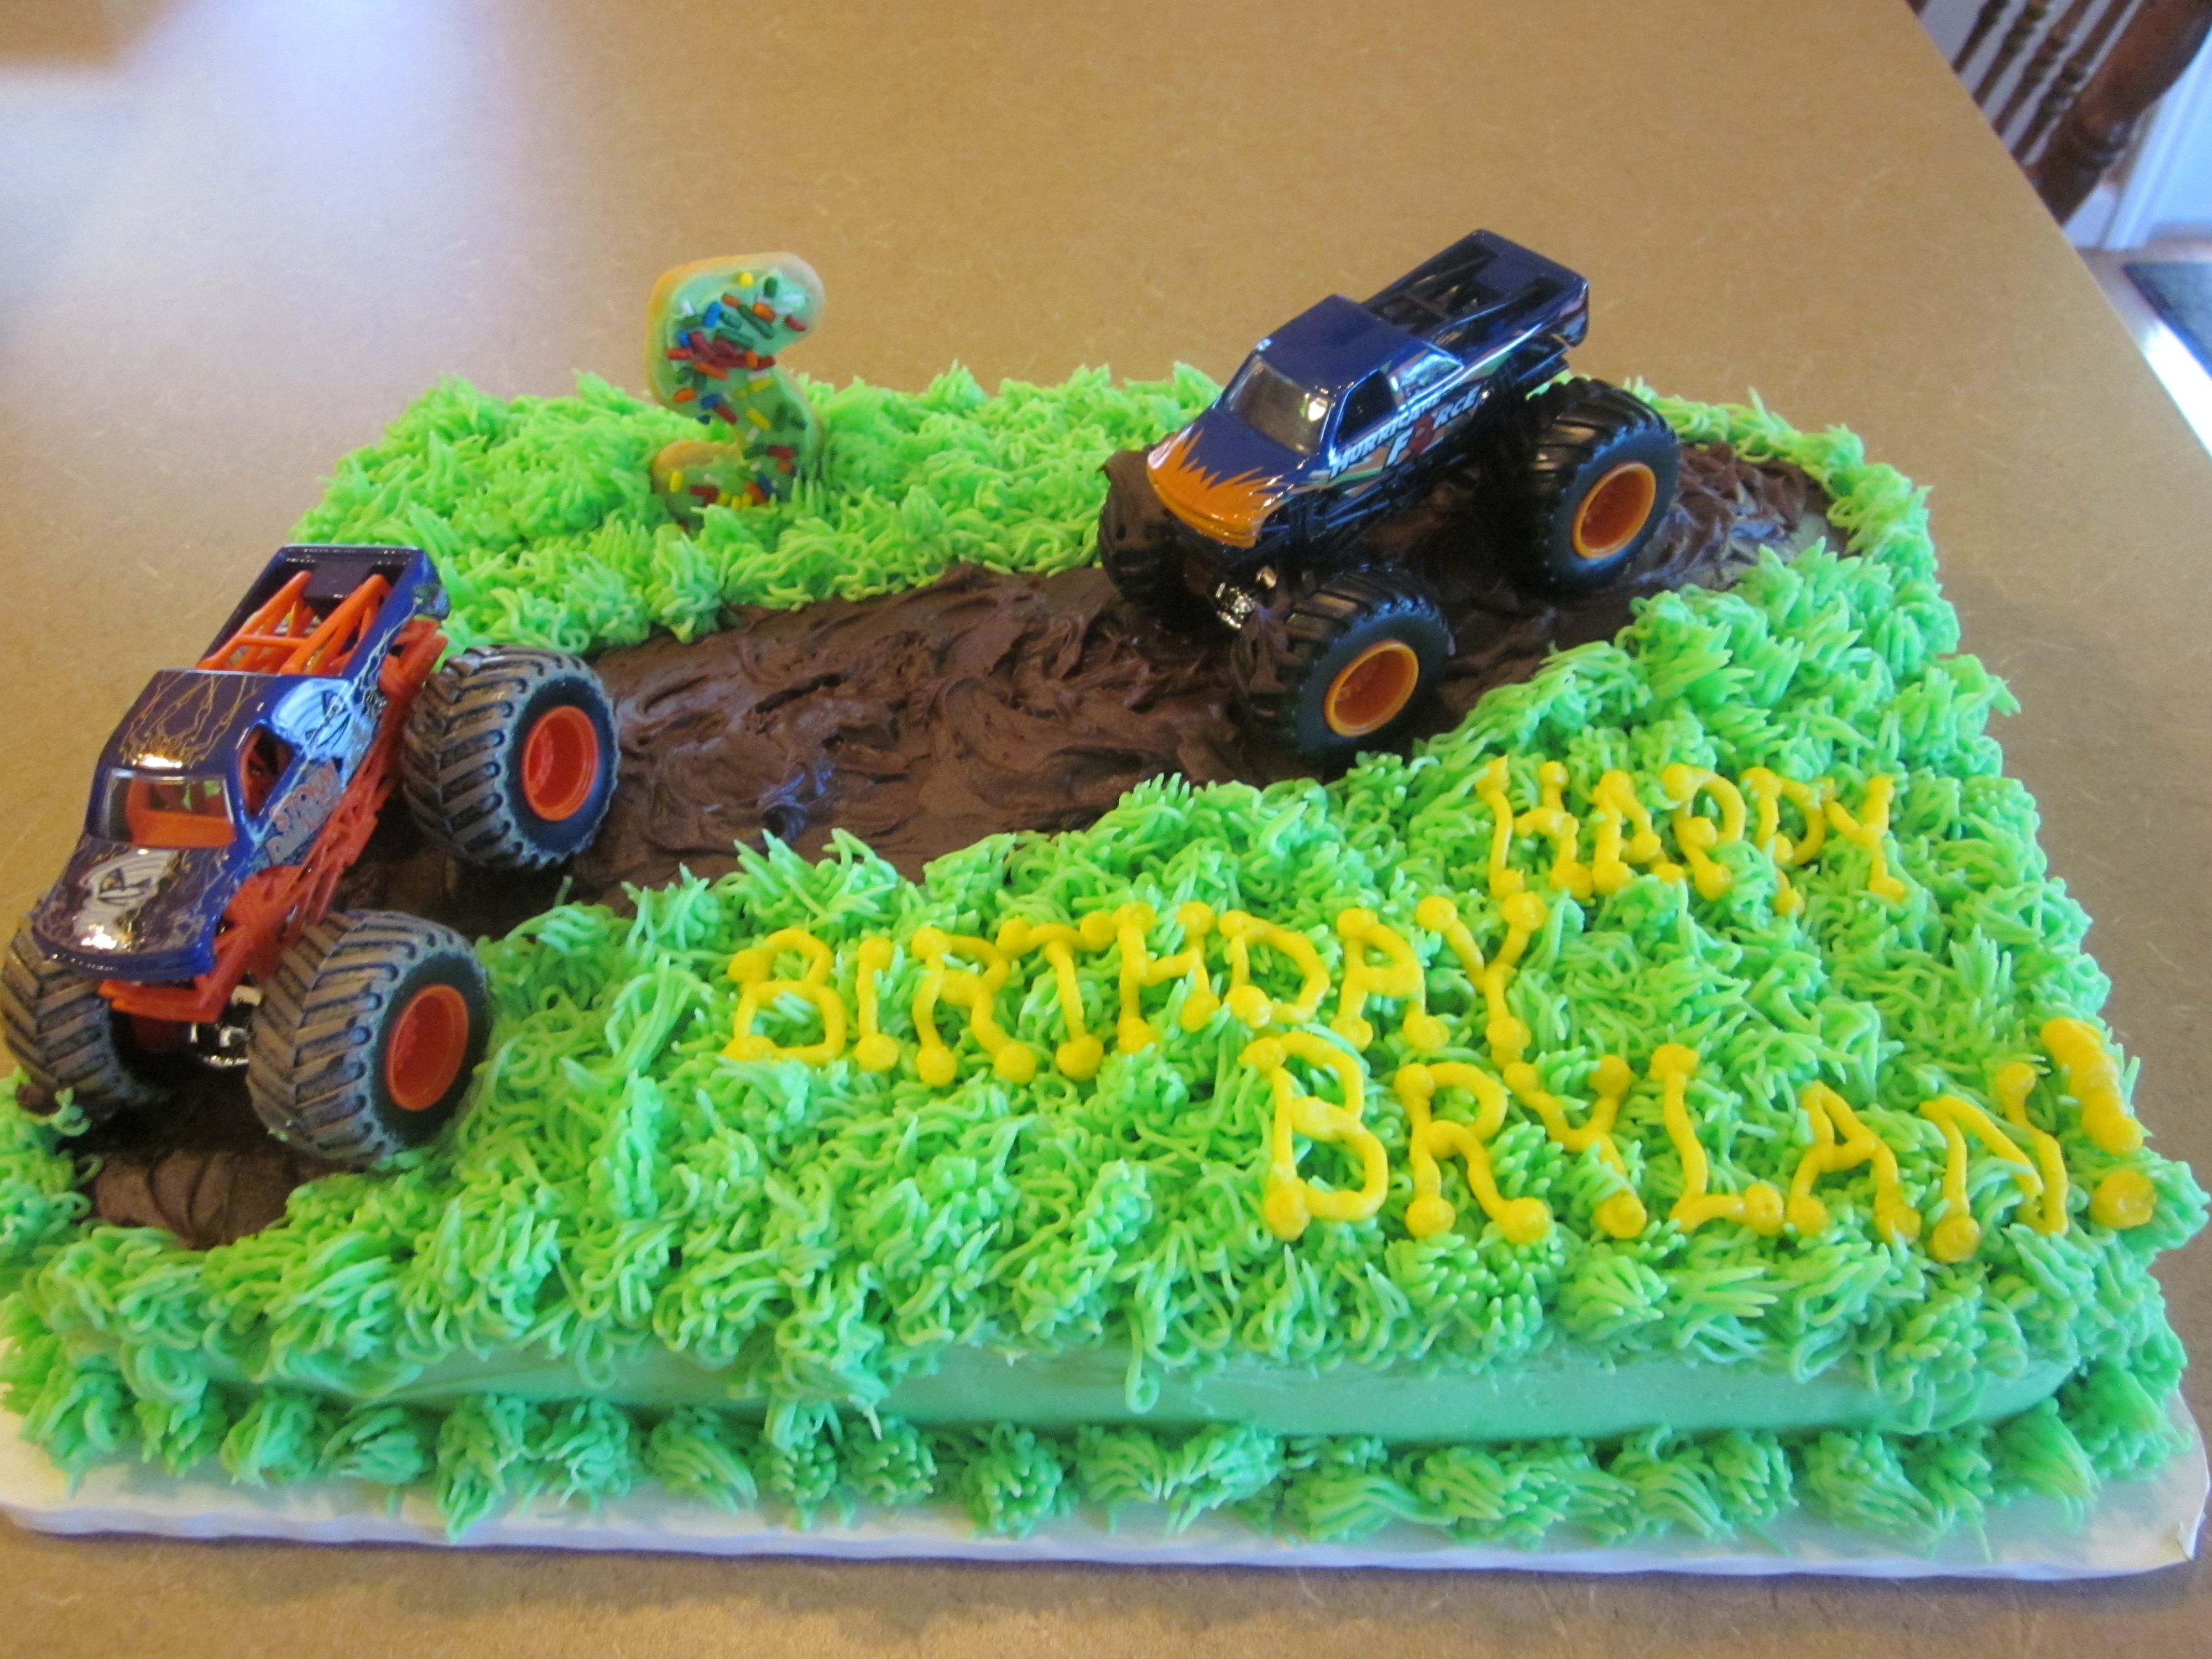 Fantastic Mudding Cake With Monster Trucks For 5 Year Old Birthday Monster Funny Birthday Cards Online Aboleapandamsfinfo